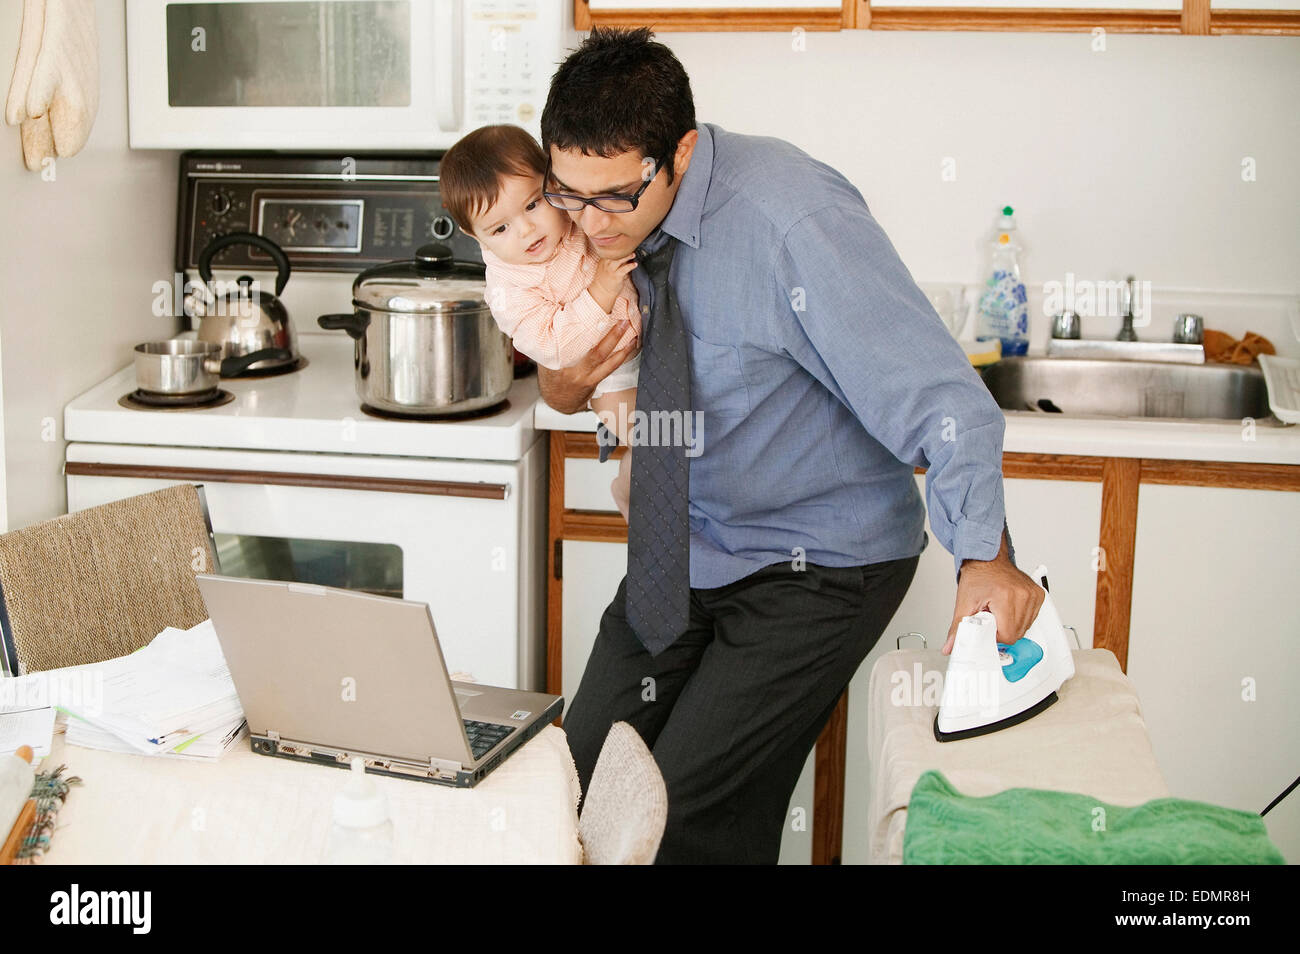 home office multitasking. Father Multitasking At Home Office